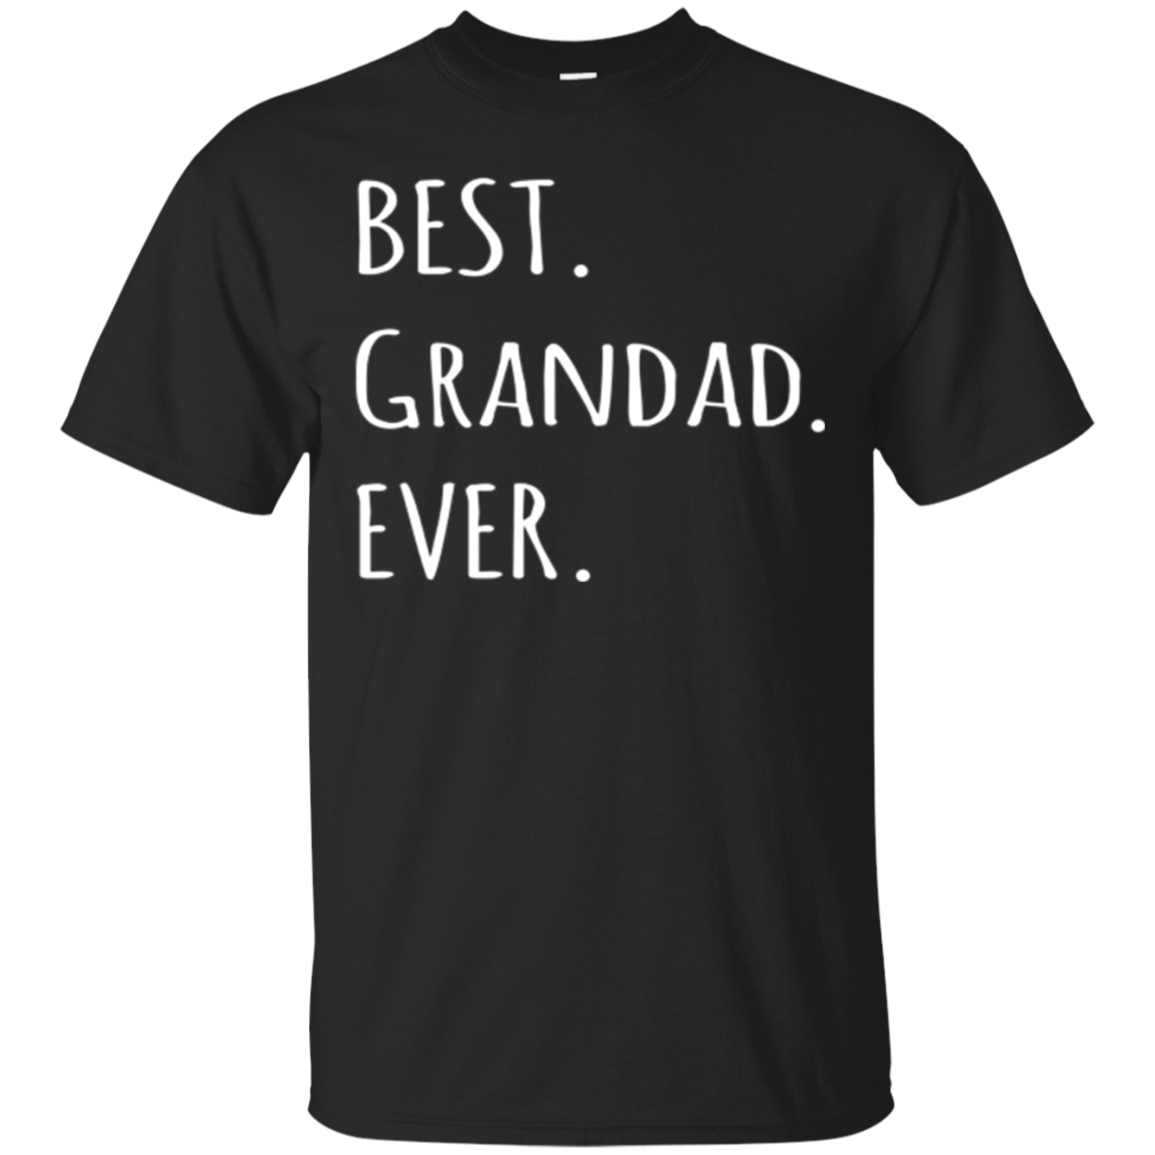 Best Grandad Ever tshirt - Grandpa nickname text t shirt tee